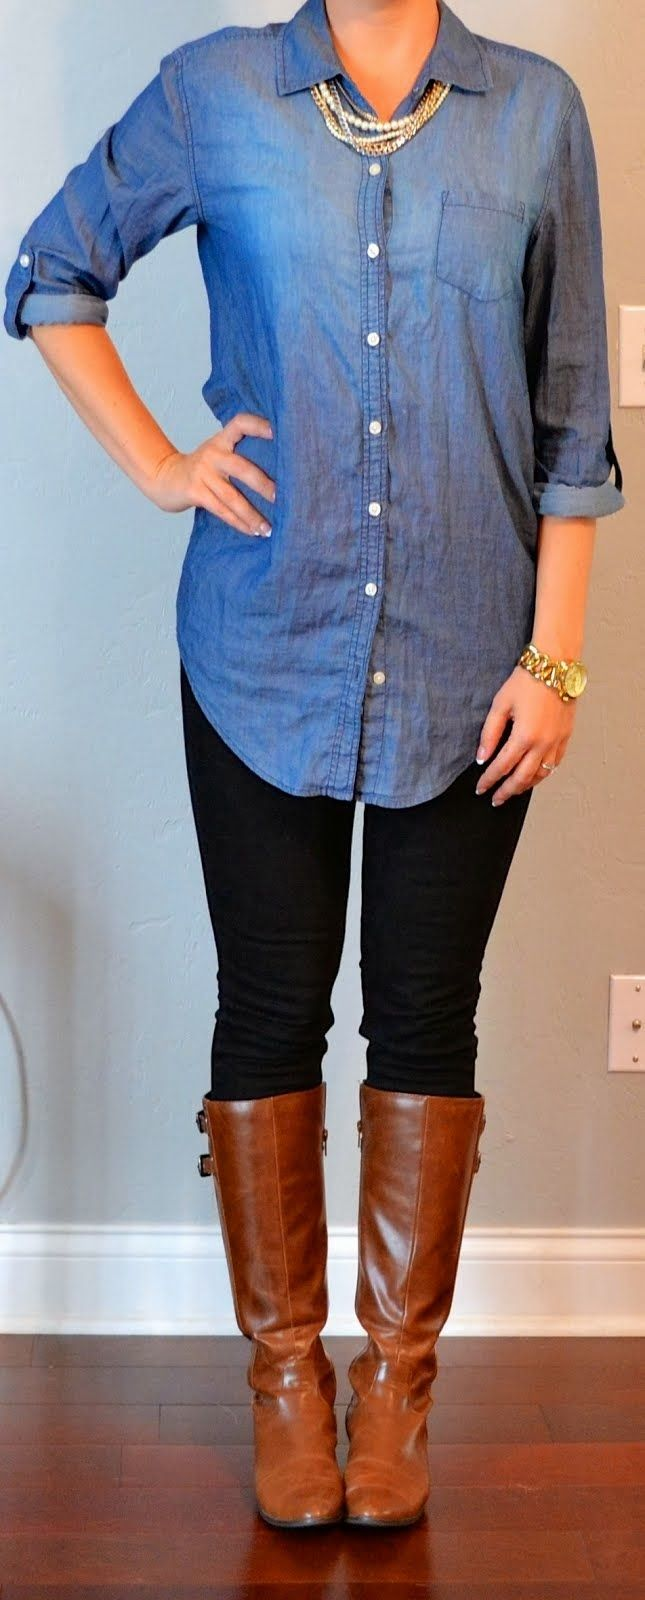 Chambray shirt is a must have for fall, but I need one without all the buttons, my boobs don't like to cooperate in button downs